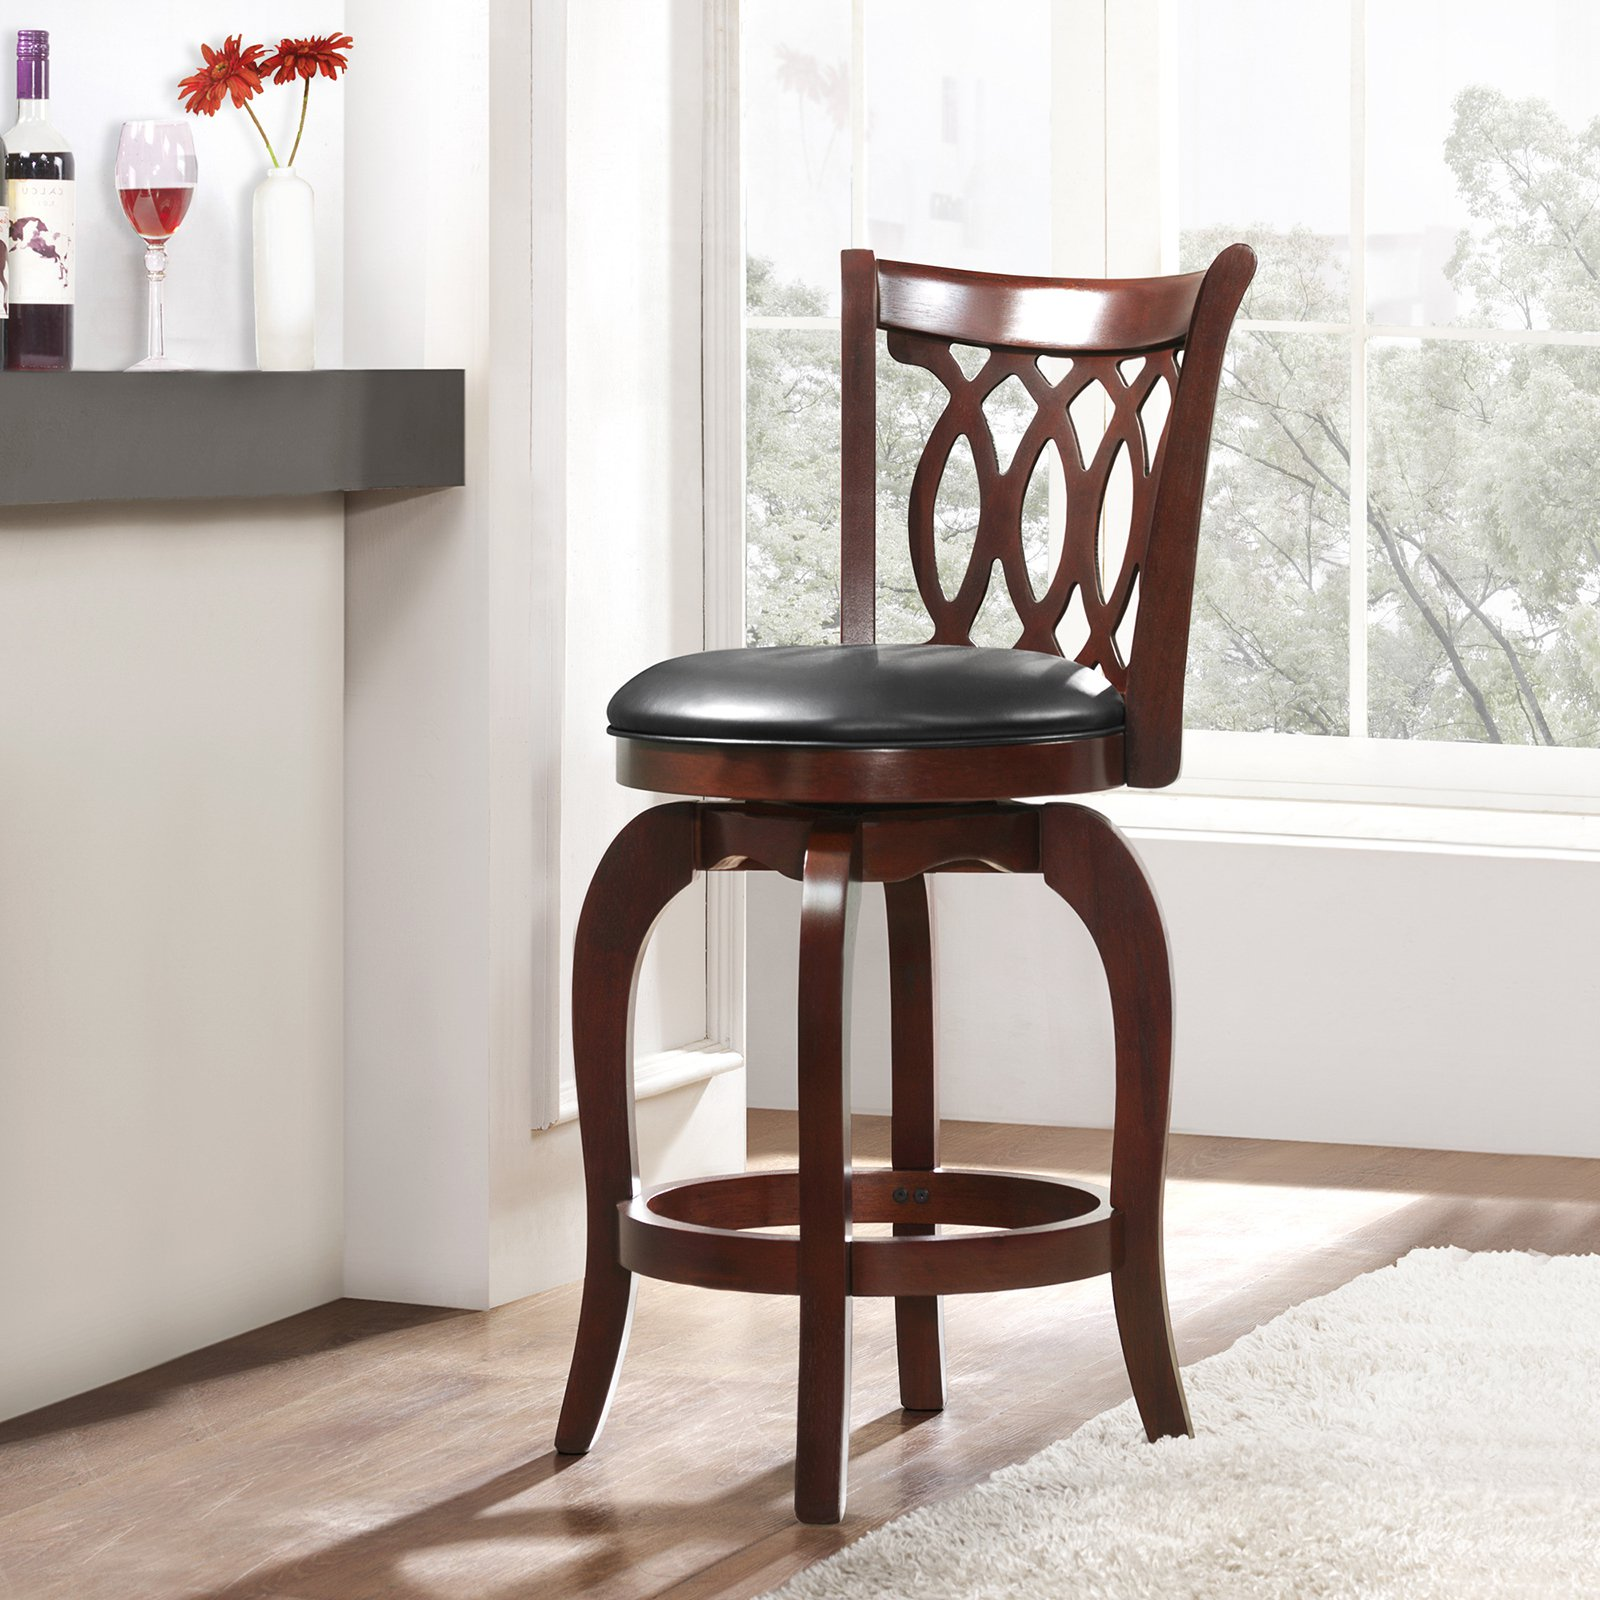 Weston Home Campton 24 in. Swivel Motif Design Stool with Faux Leather Cushion - Cherry